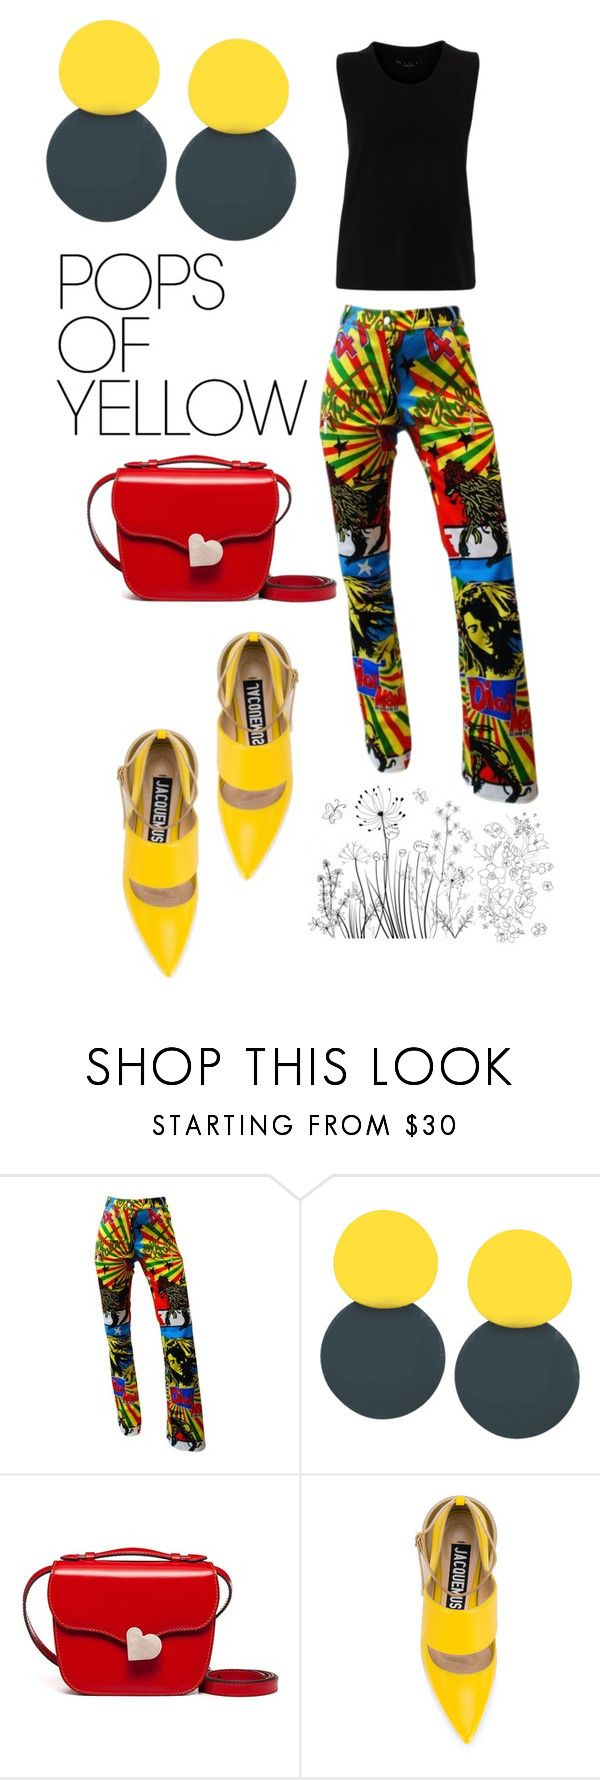 """""""Untitled #2892"""" by aqualyra ❤ liked on Polyvore featuring John Galliano, Marni, Jacquemus, PopsOfYellow and NYFWYellow"""